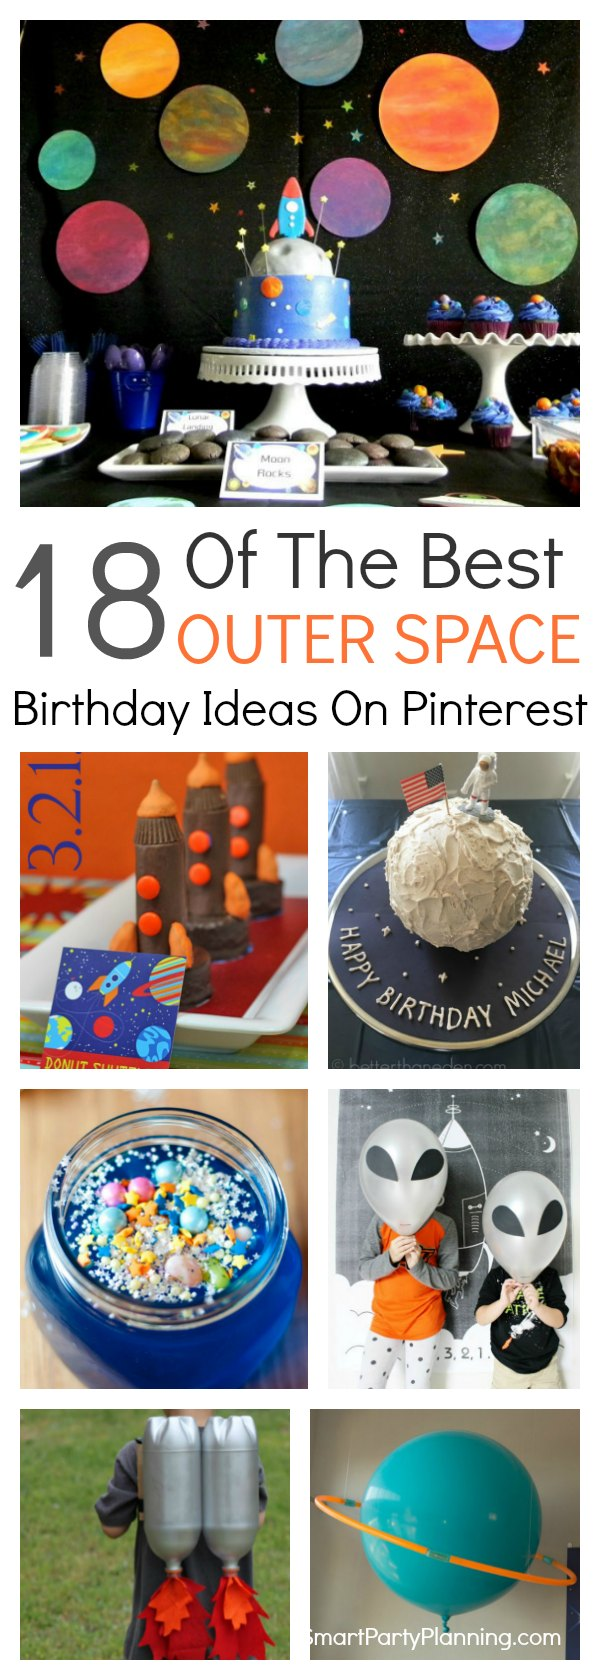 18 awesome ideas for a fun filled outer space birthday party.  Easy ideas for space themed decorations, food, games and favors. This theme will be just as much fun to plan as it will be to hold. So start organizing those planets and rocket ships and plan a party for the boys that they will never forget.